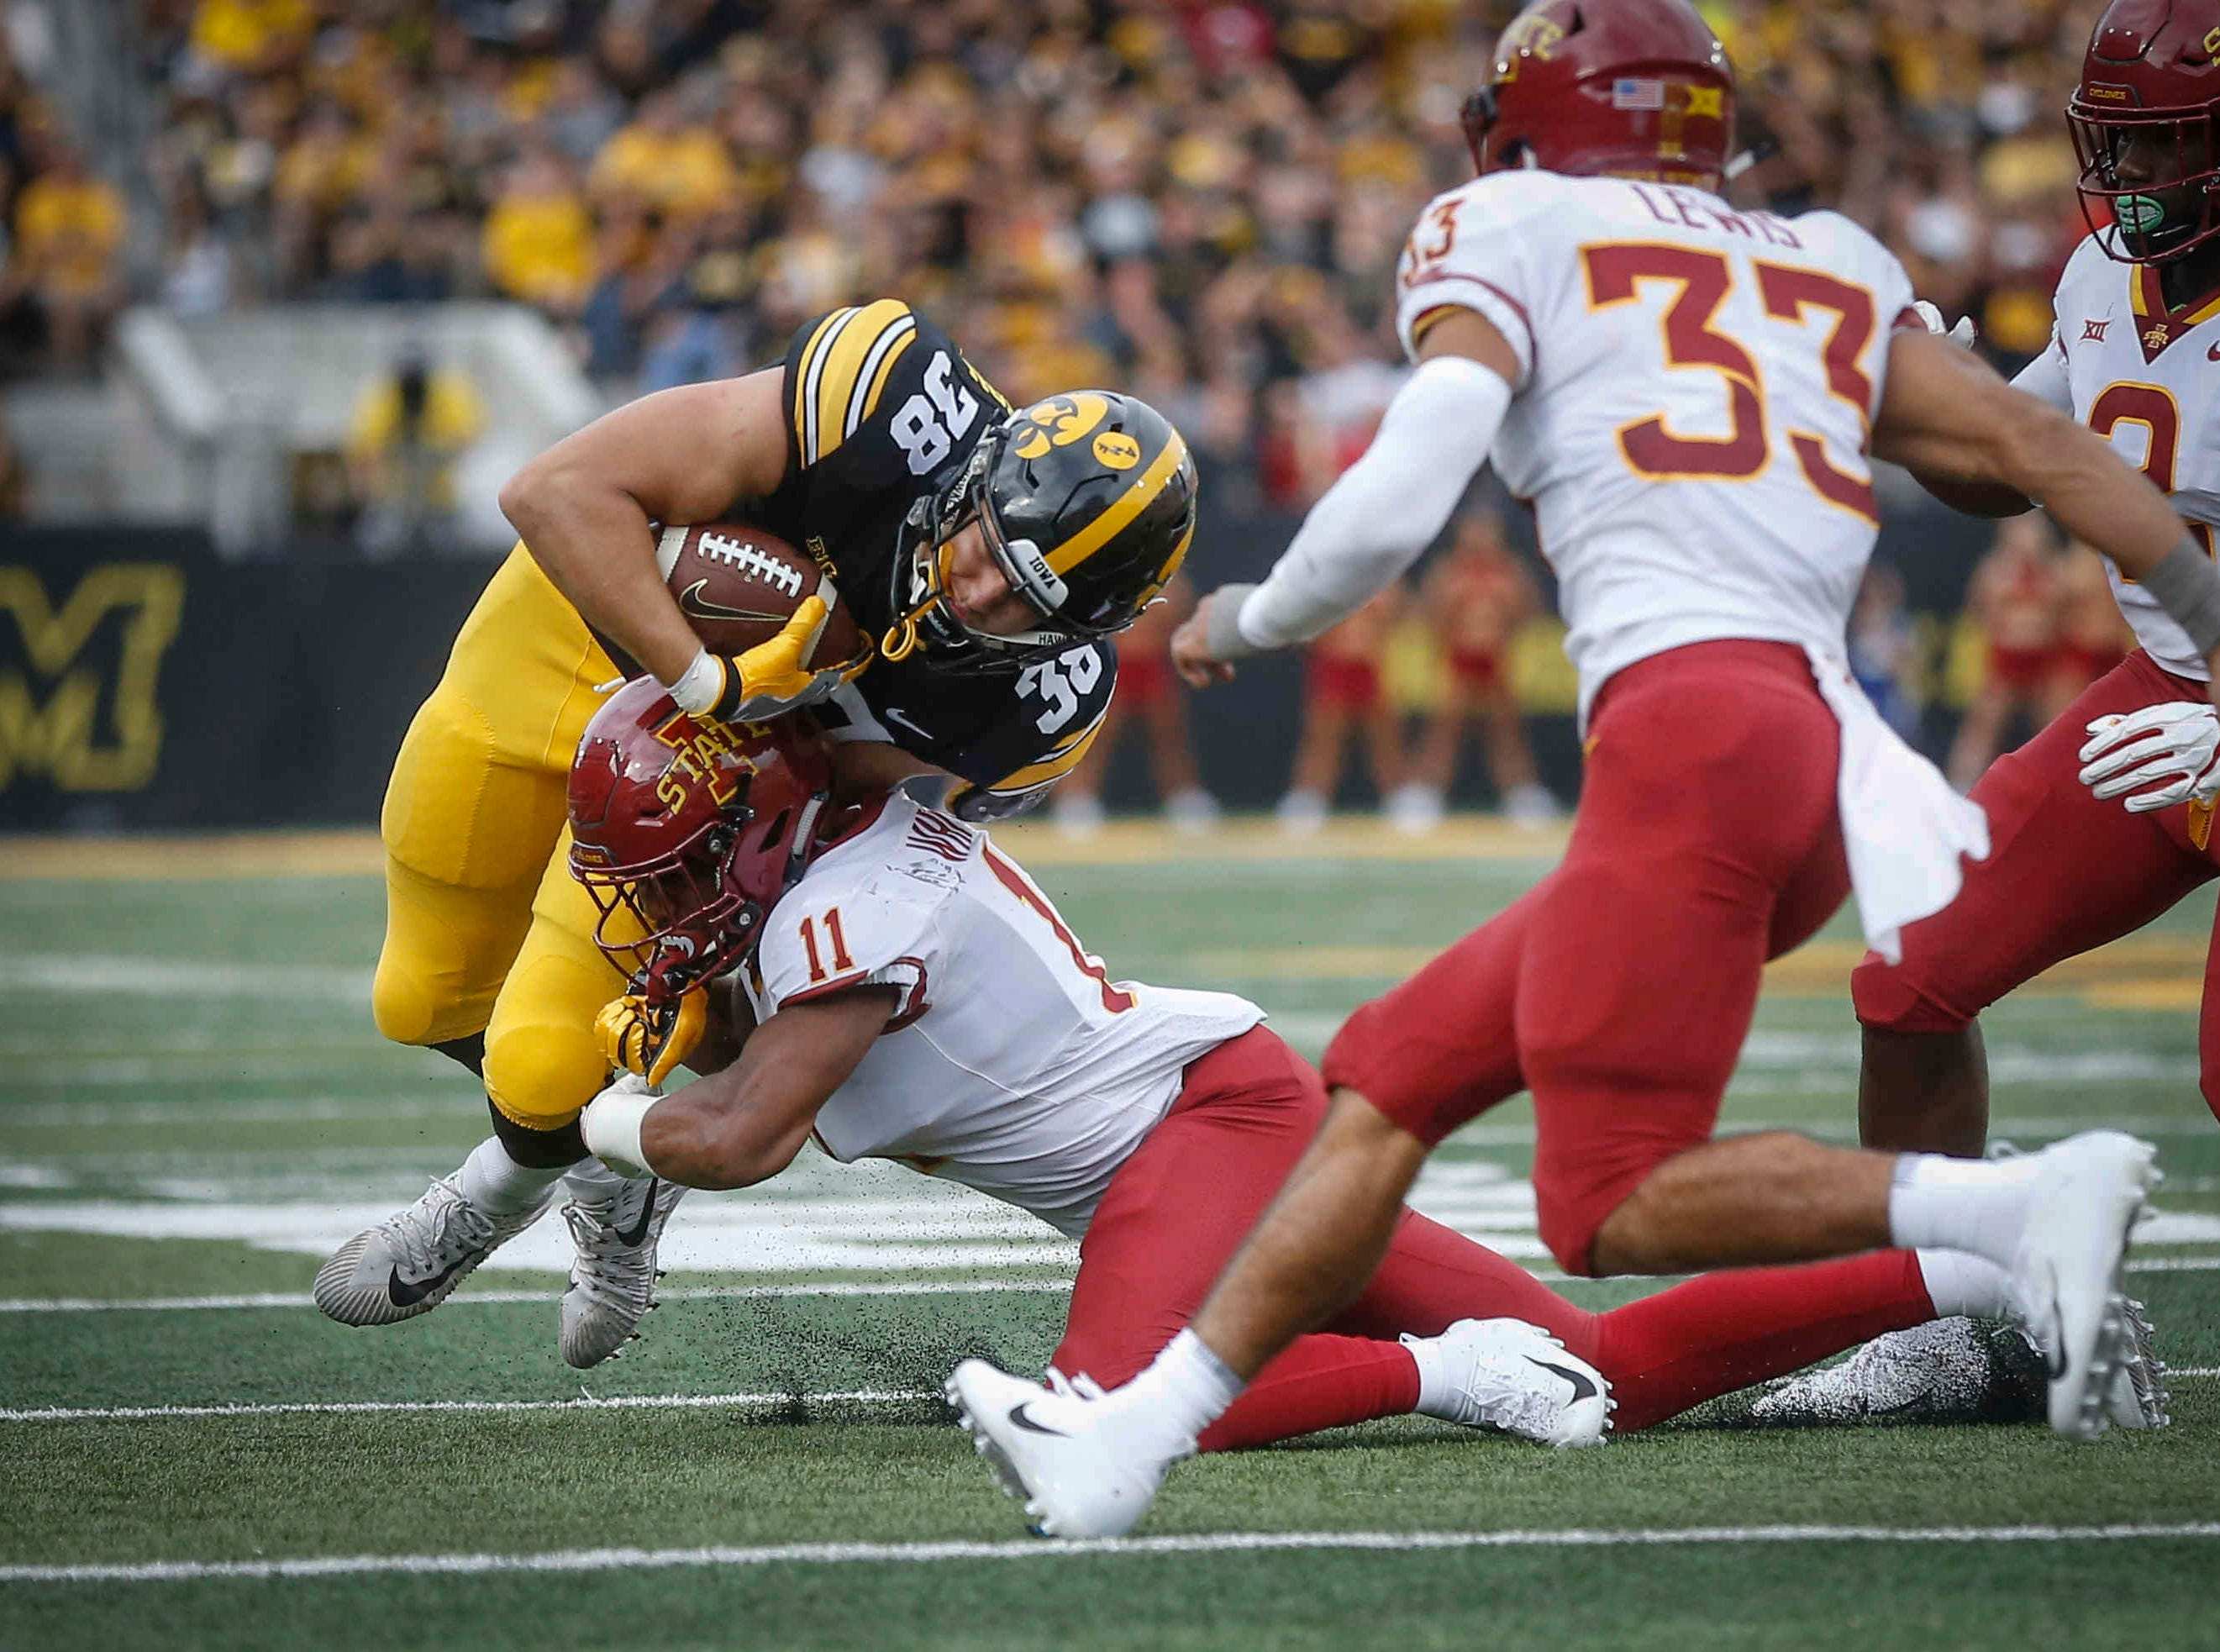 Iowa State defensive back Lawrence White hits Iowa tight end T.J. Hockenson on Saturday, Sept. 8, 2018, at Kinnick Stadium in Iowa City.